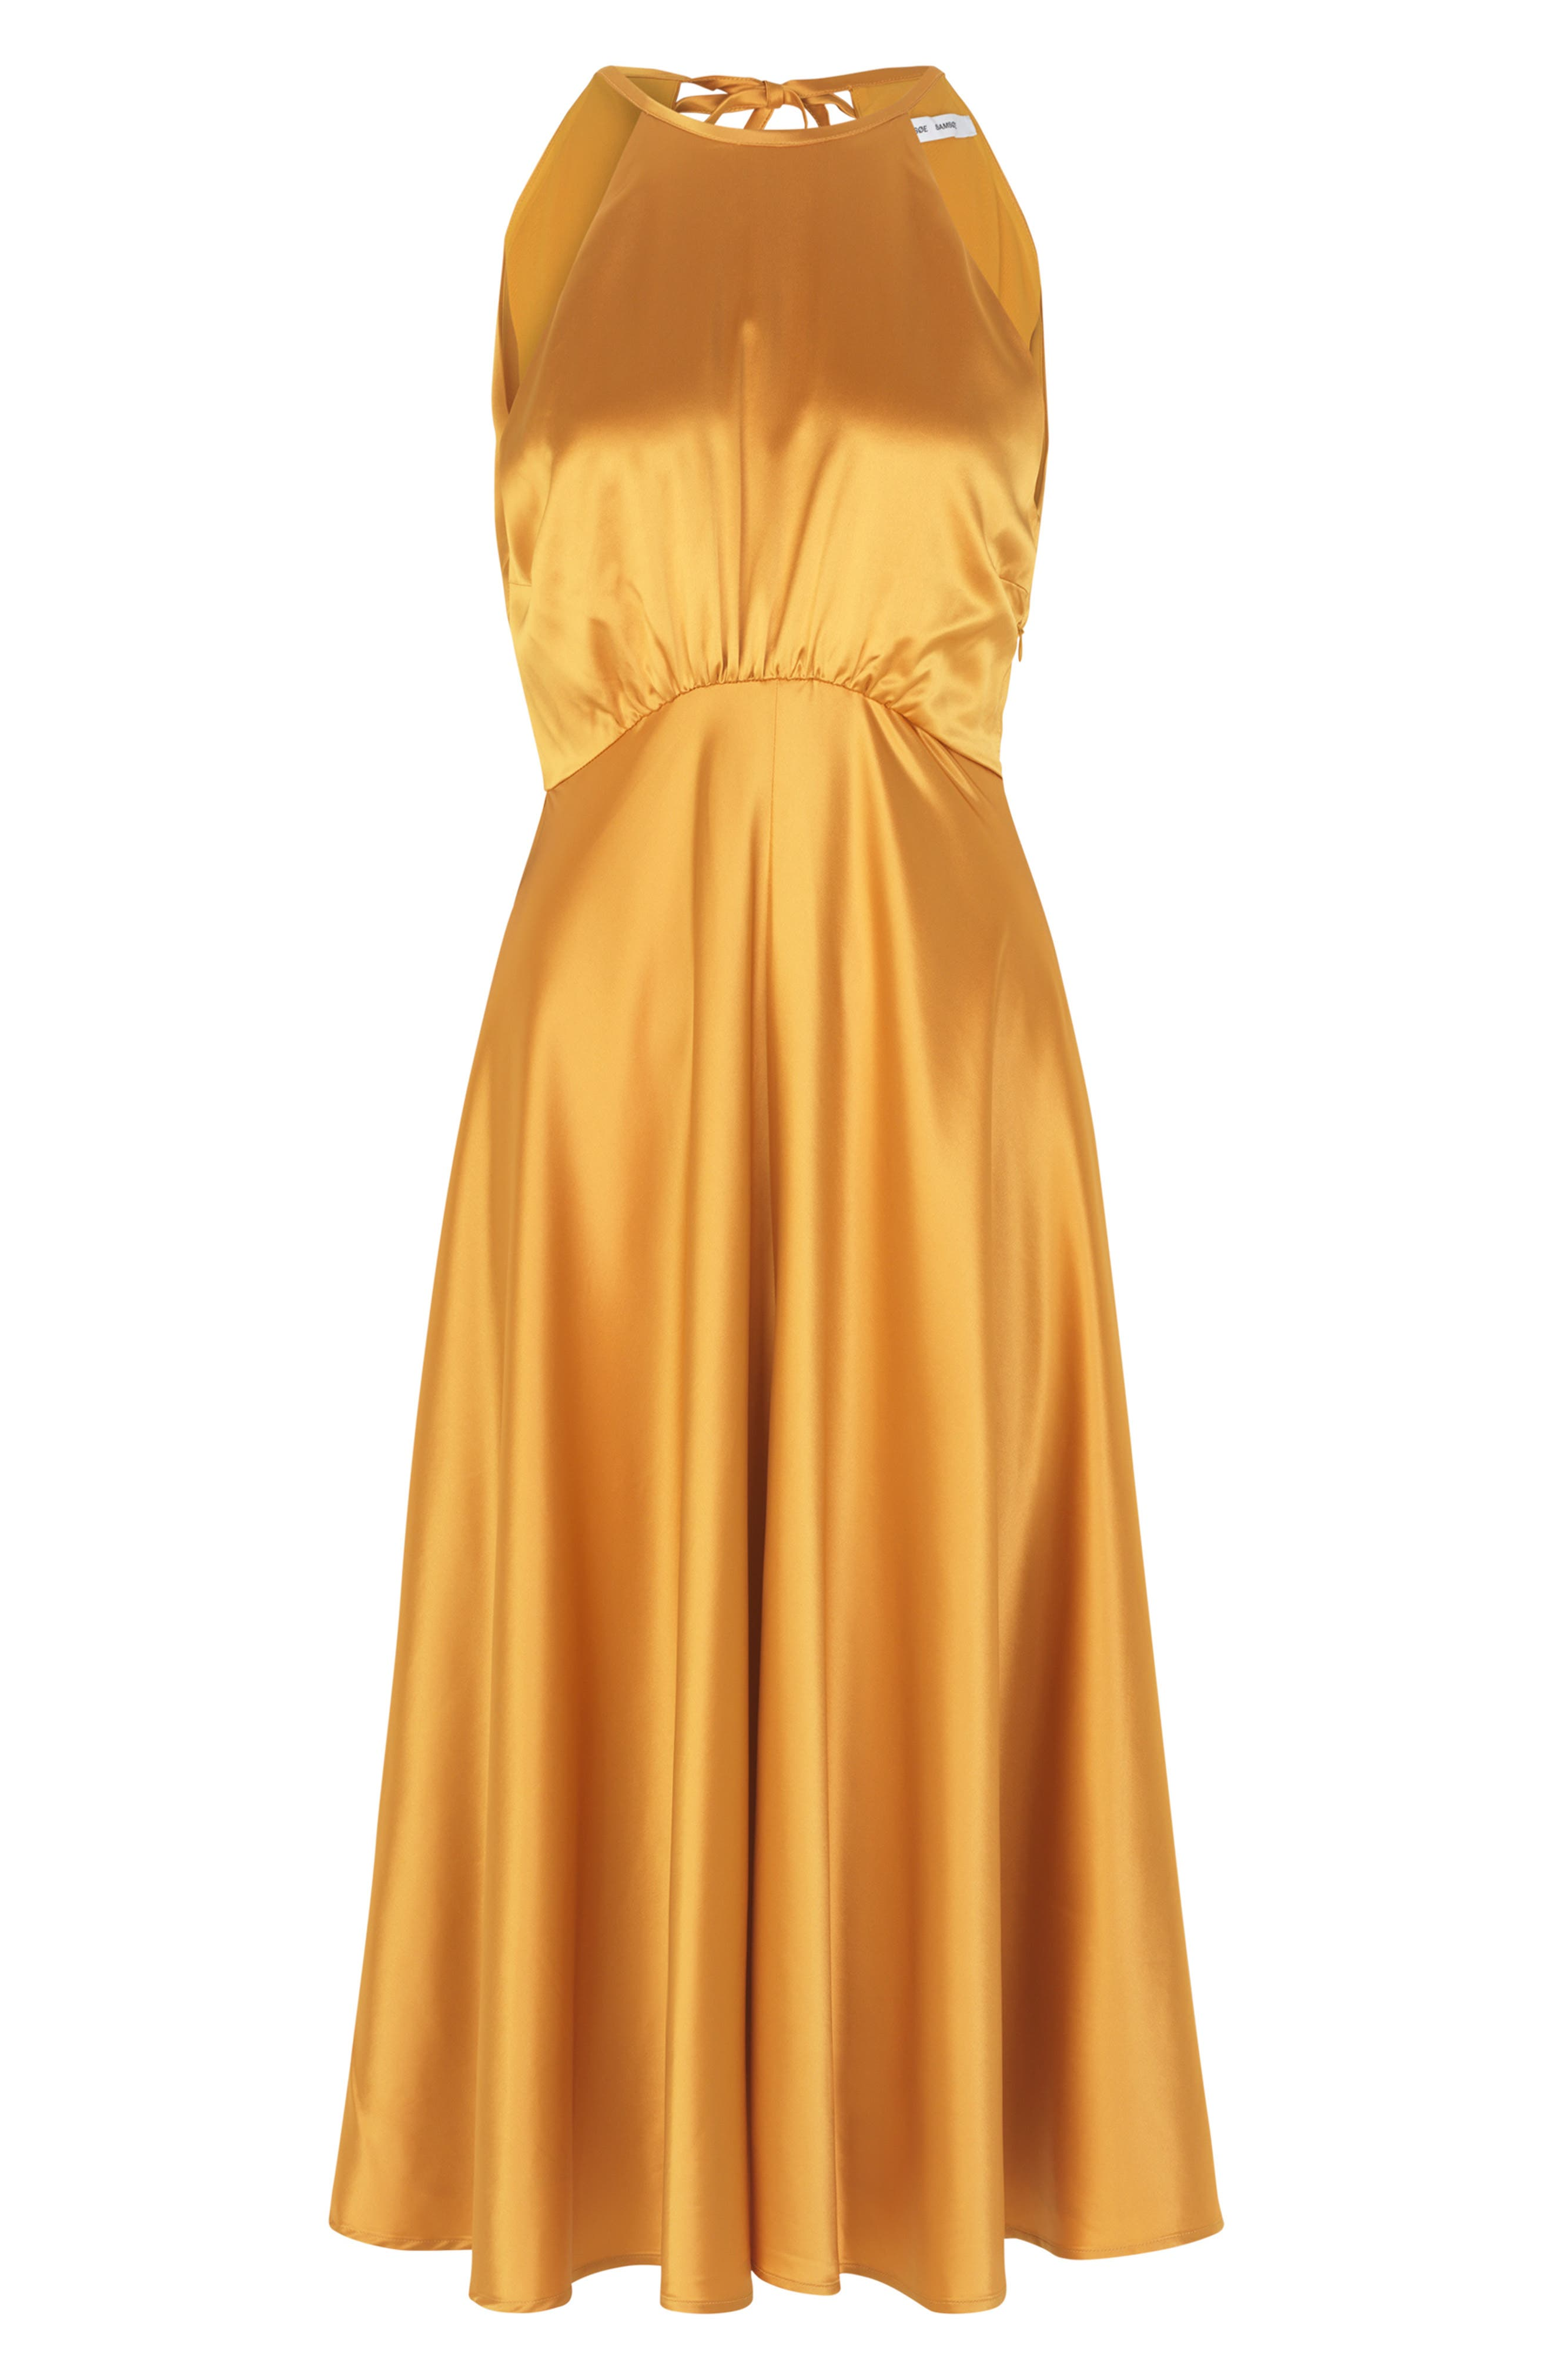 70s Dresses – Disco Dress, Hippie Dress, Wrap Dress Womens Samse Samse Rhea Sleeveless Satin Dress Size XX-Small - Yellow $320.00 AT vintagedancer.com